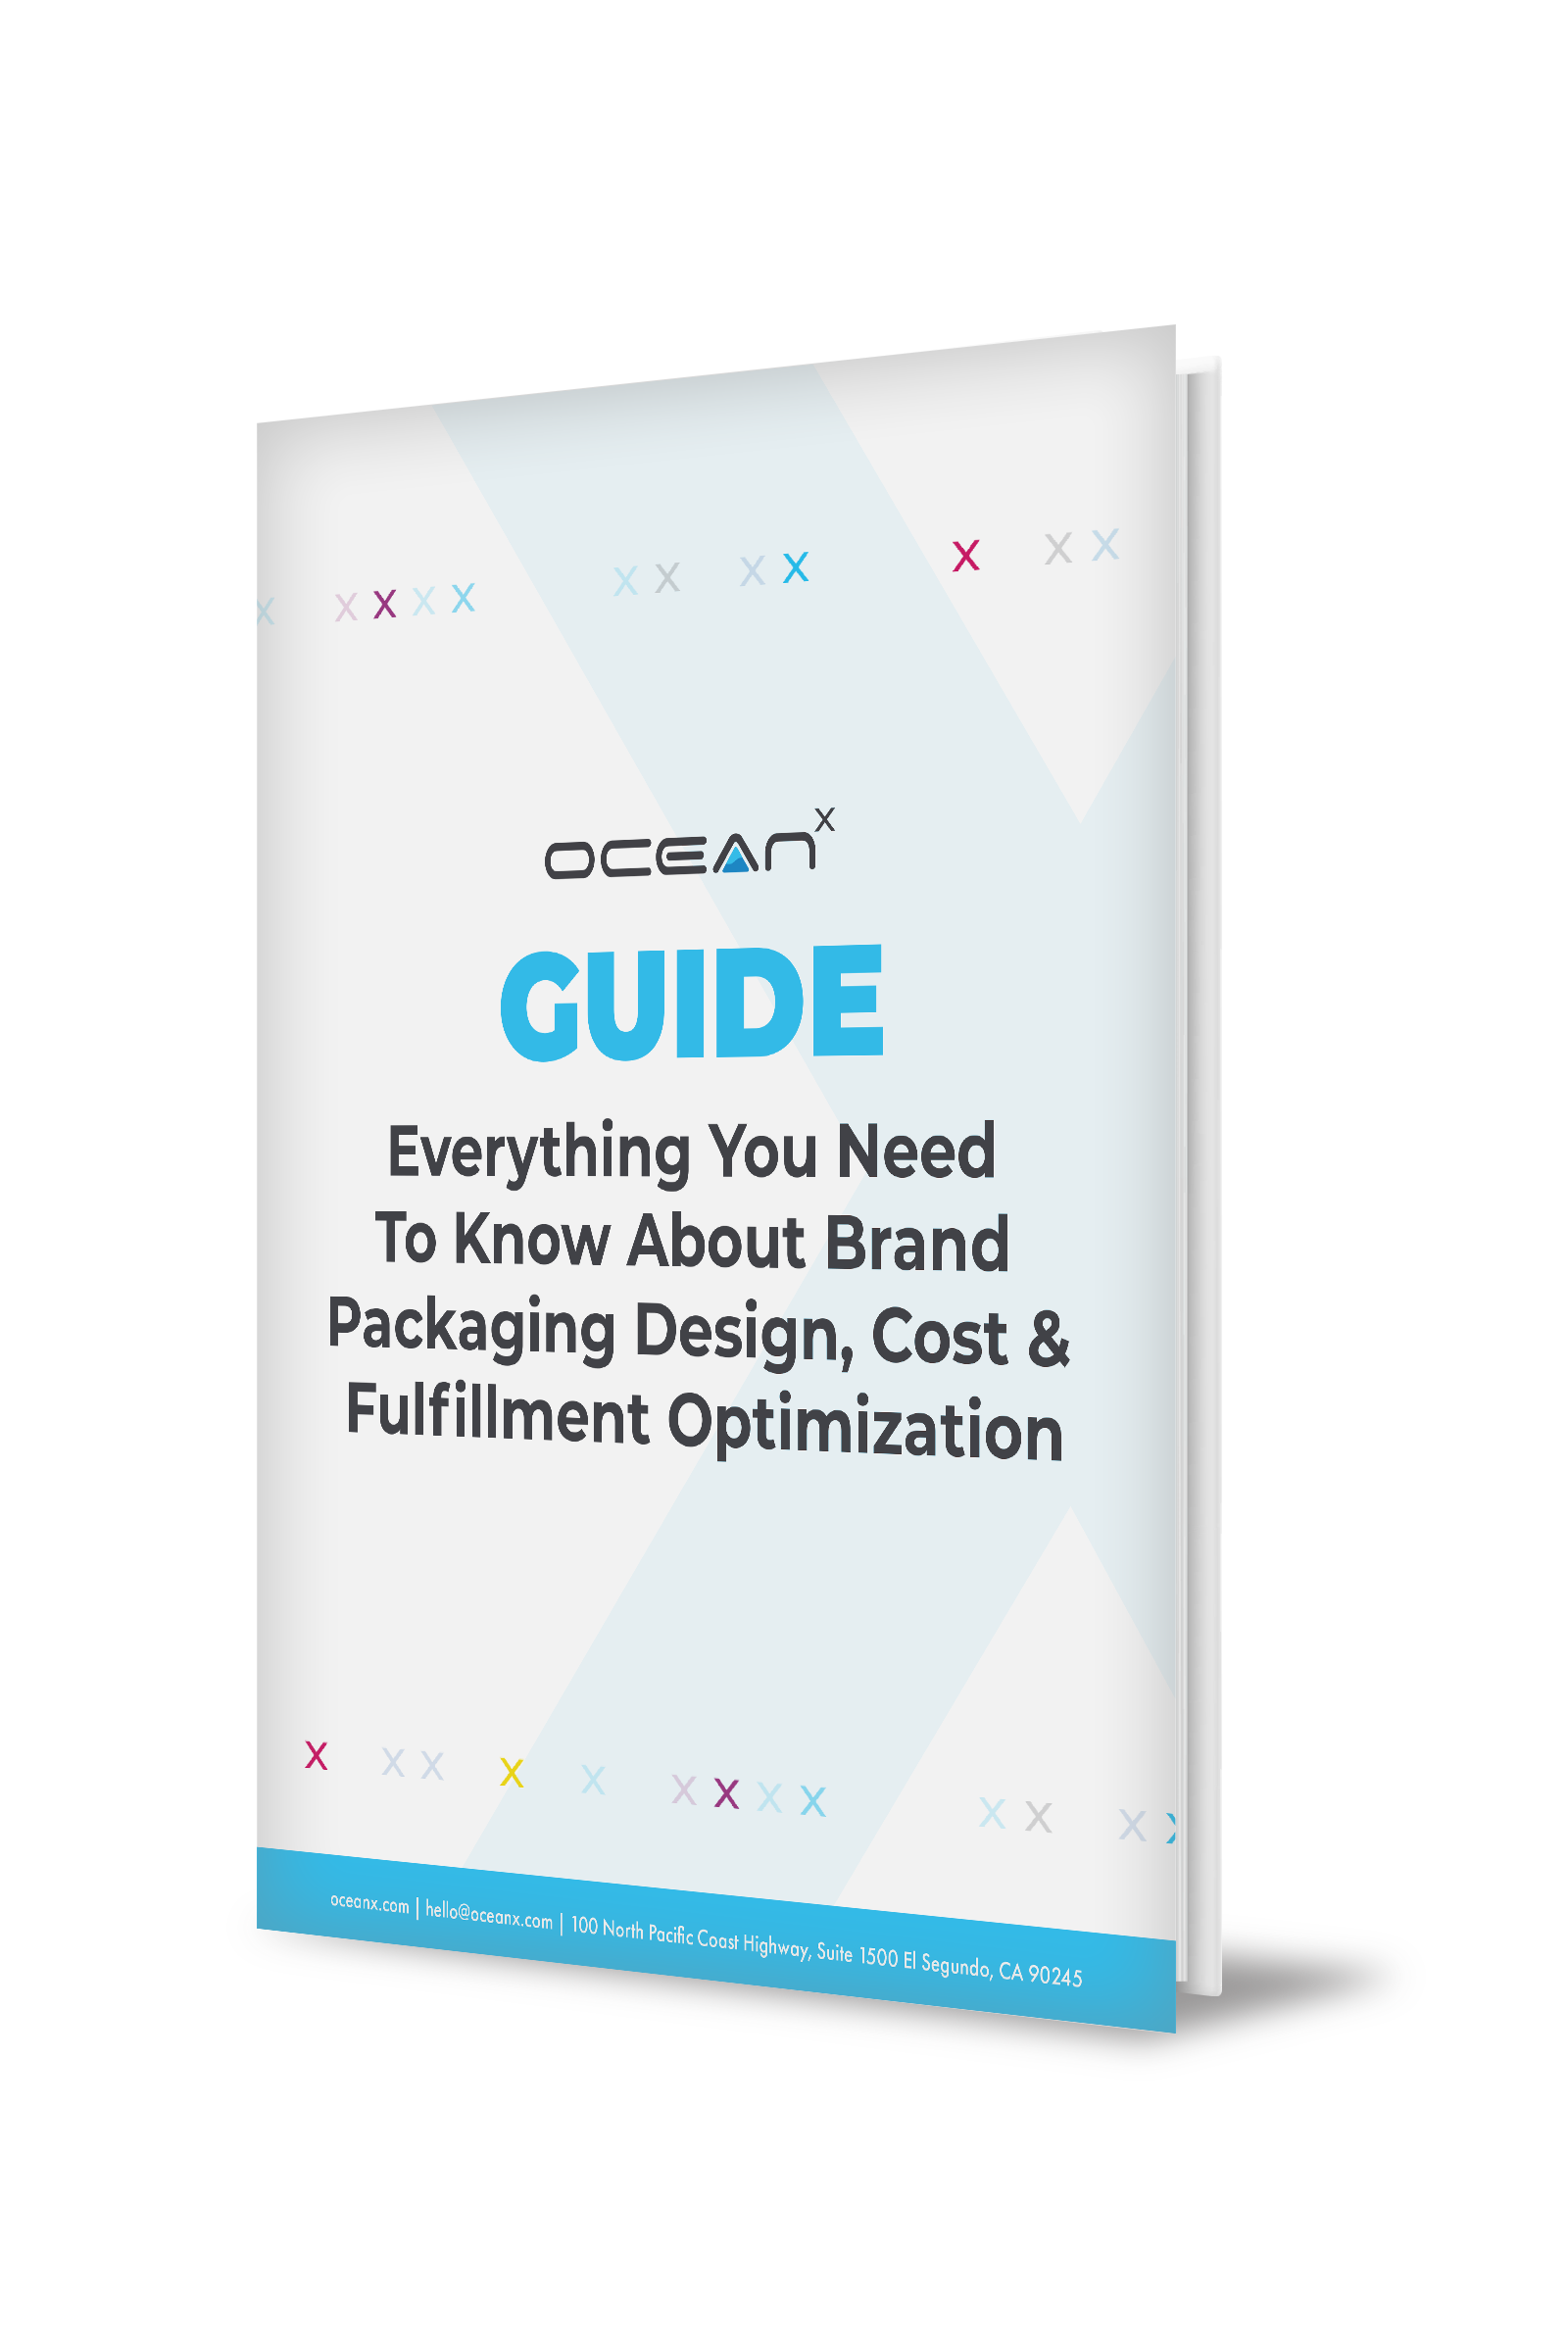 1078753_Cover Image (Everything You Need to Know About Brand Packaging Design)_02_052621